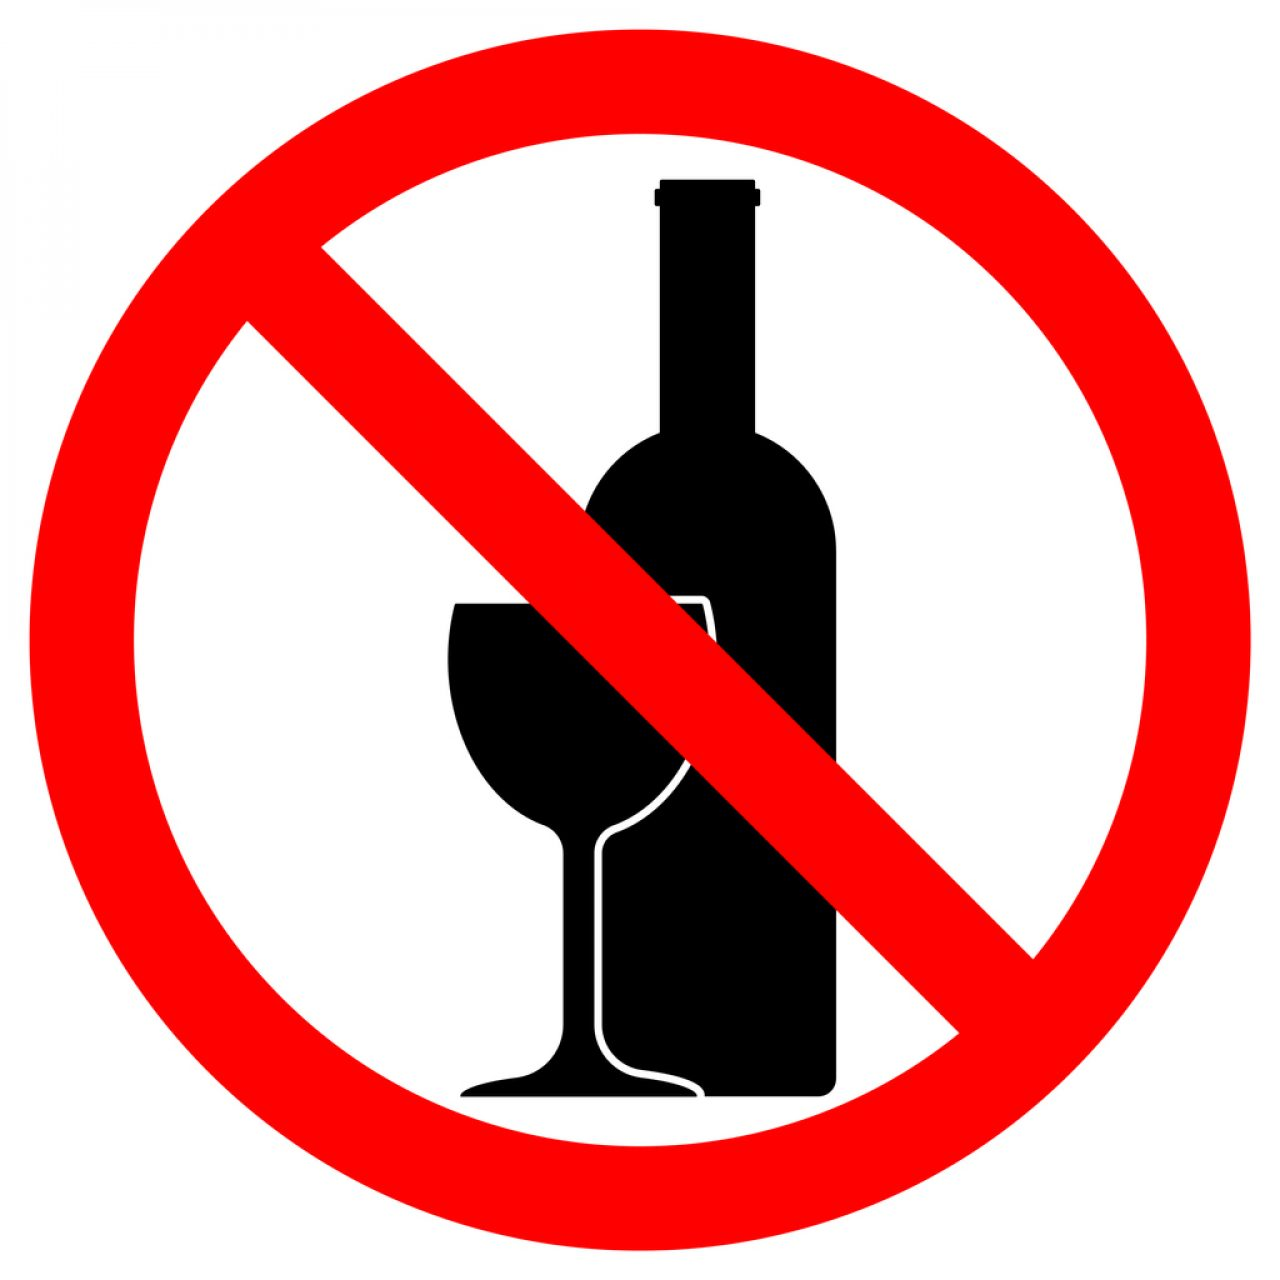 ALCOHOL FREE ZONE sign. Wine bottle and glass icons in crossed out red circle. Vector.